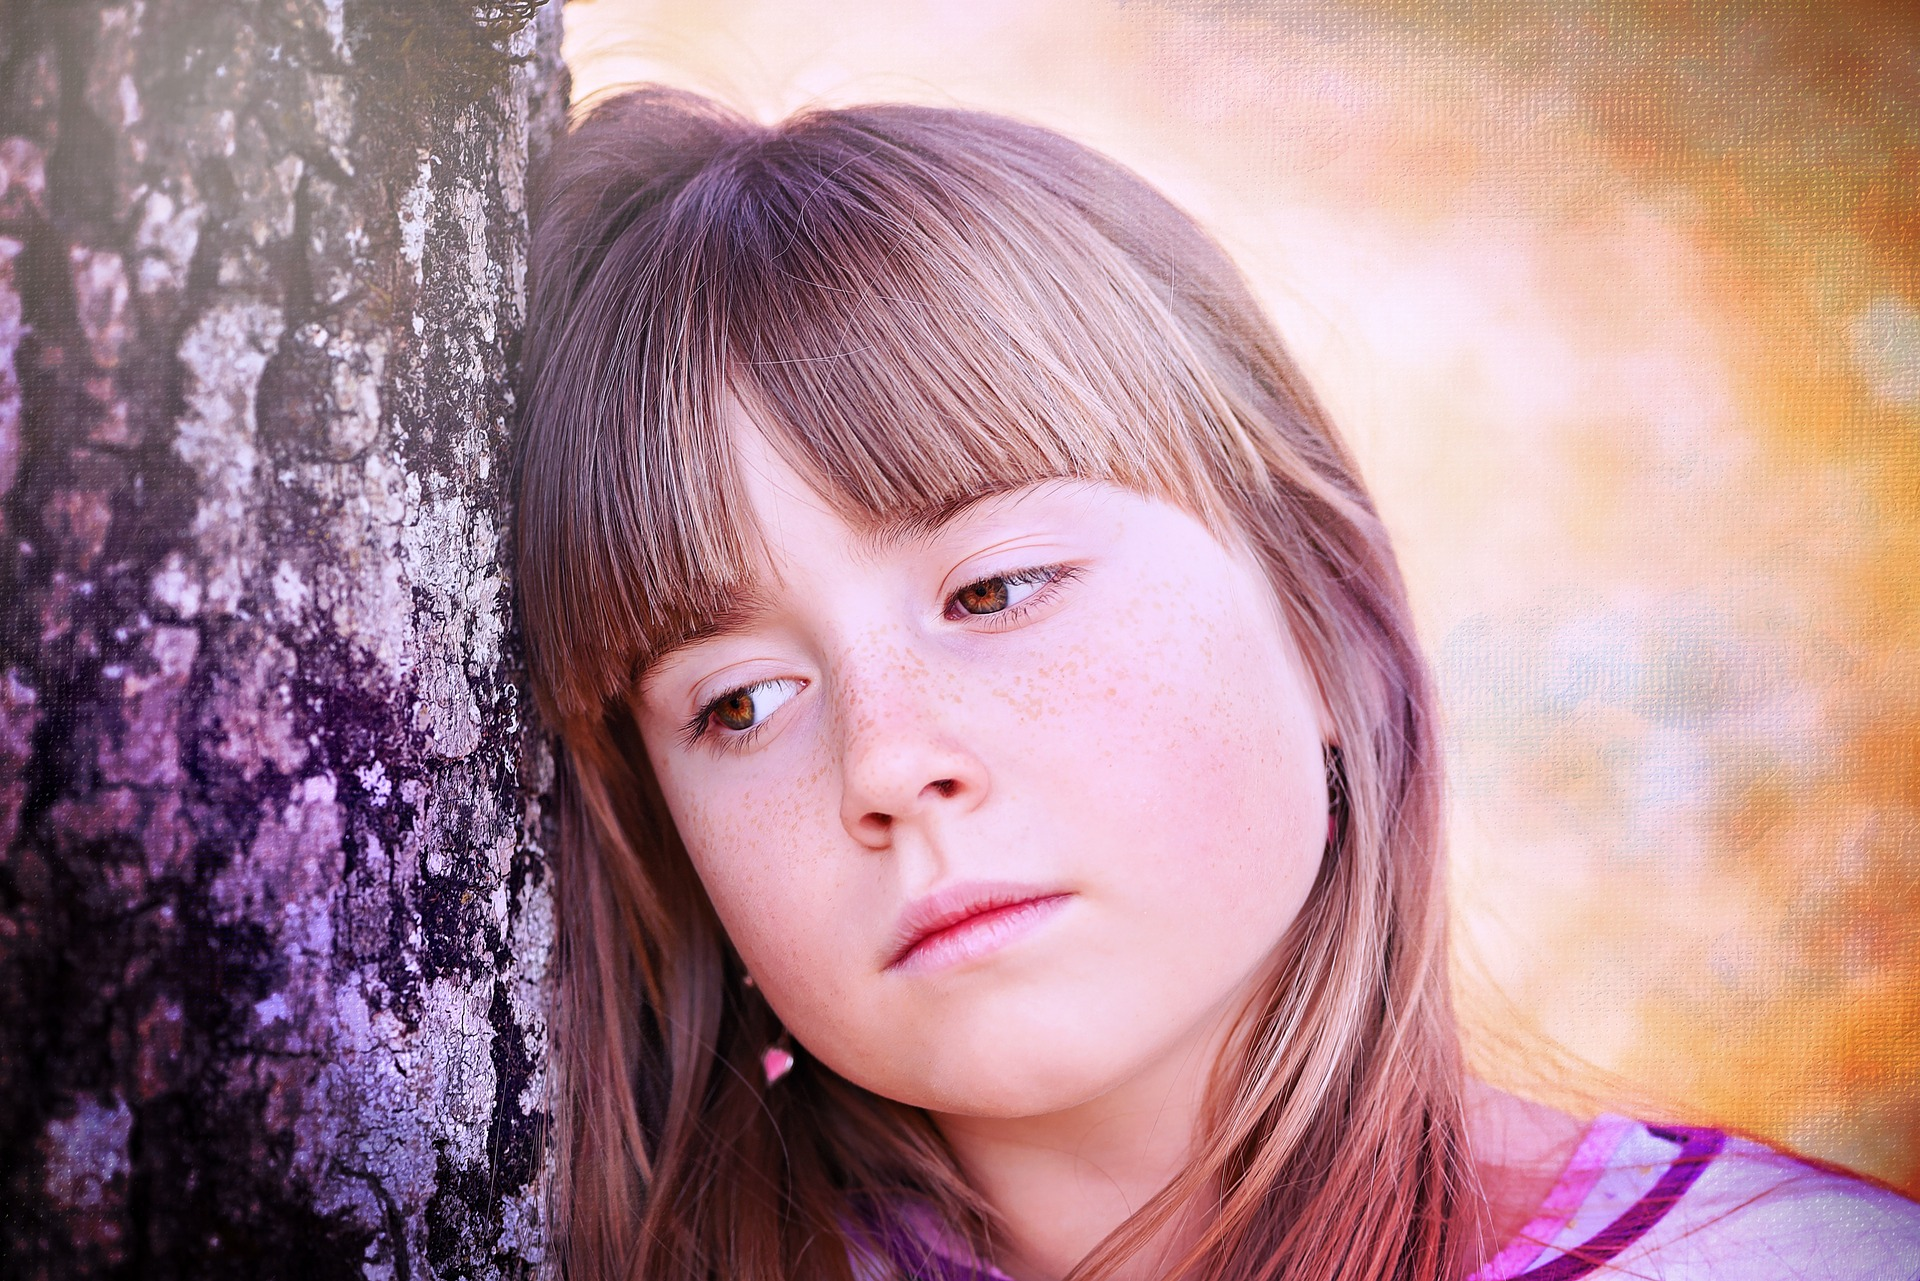 Young girl sad on tree